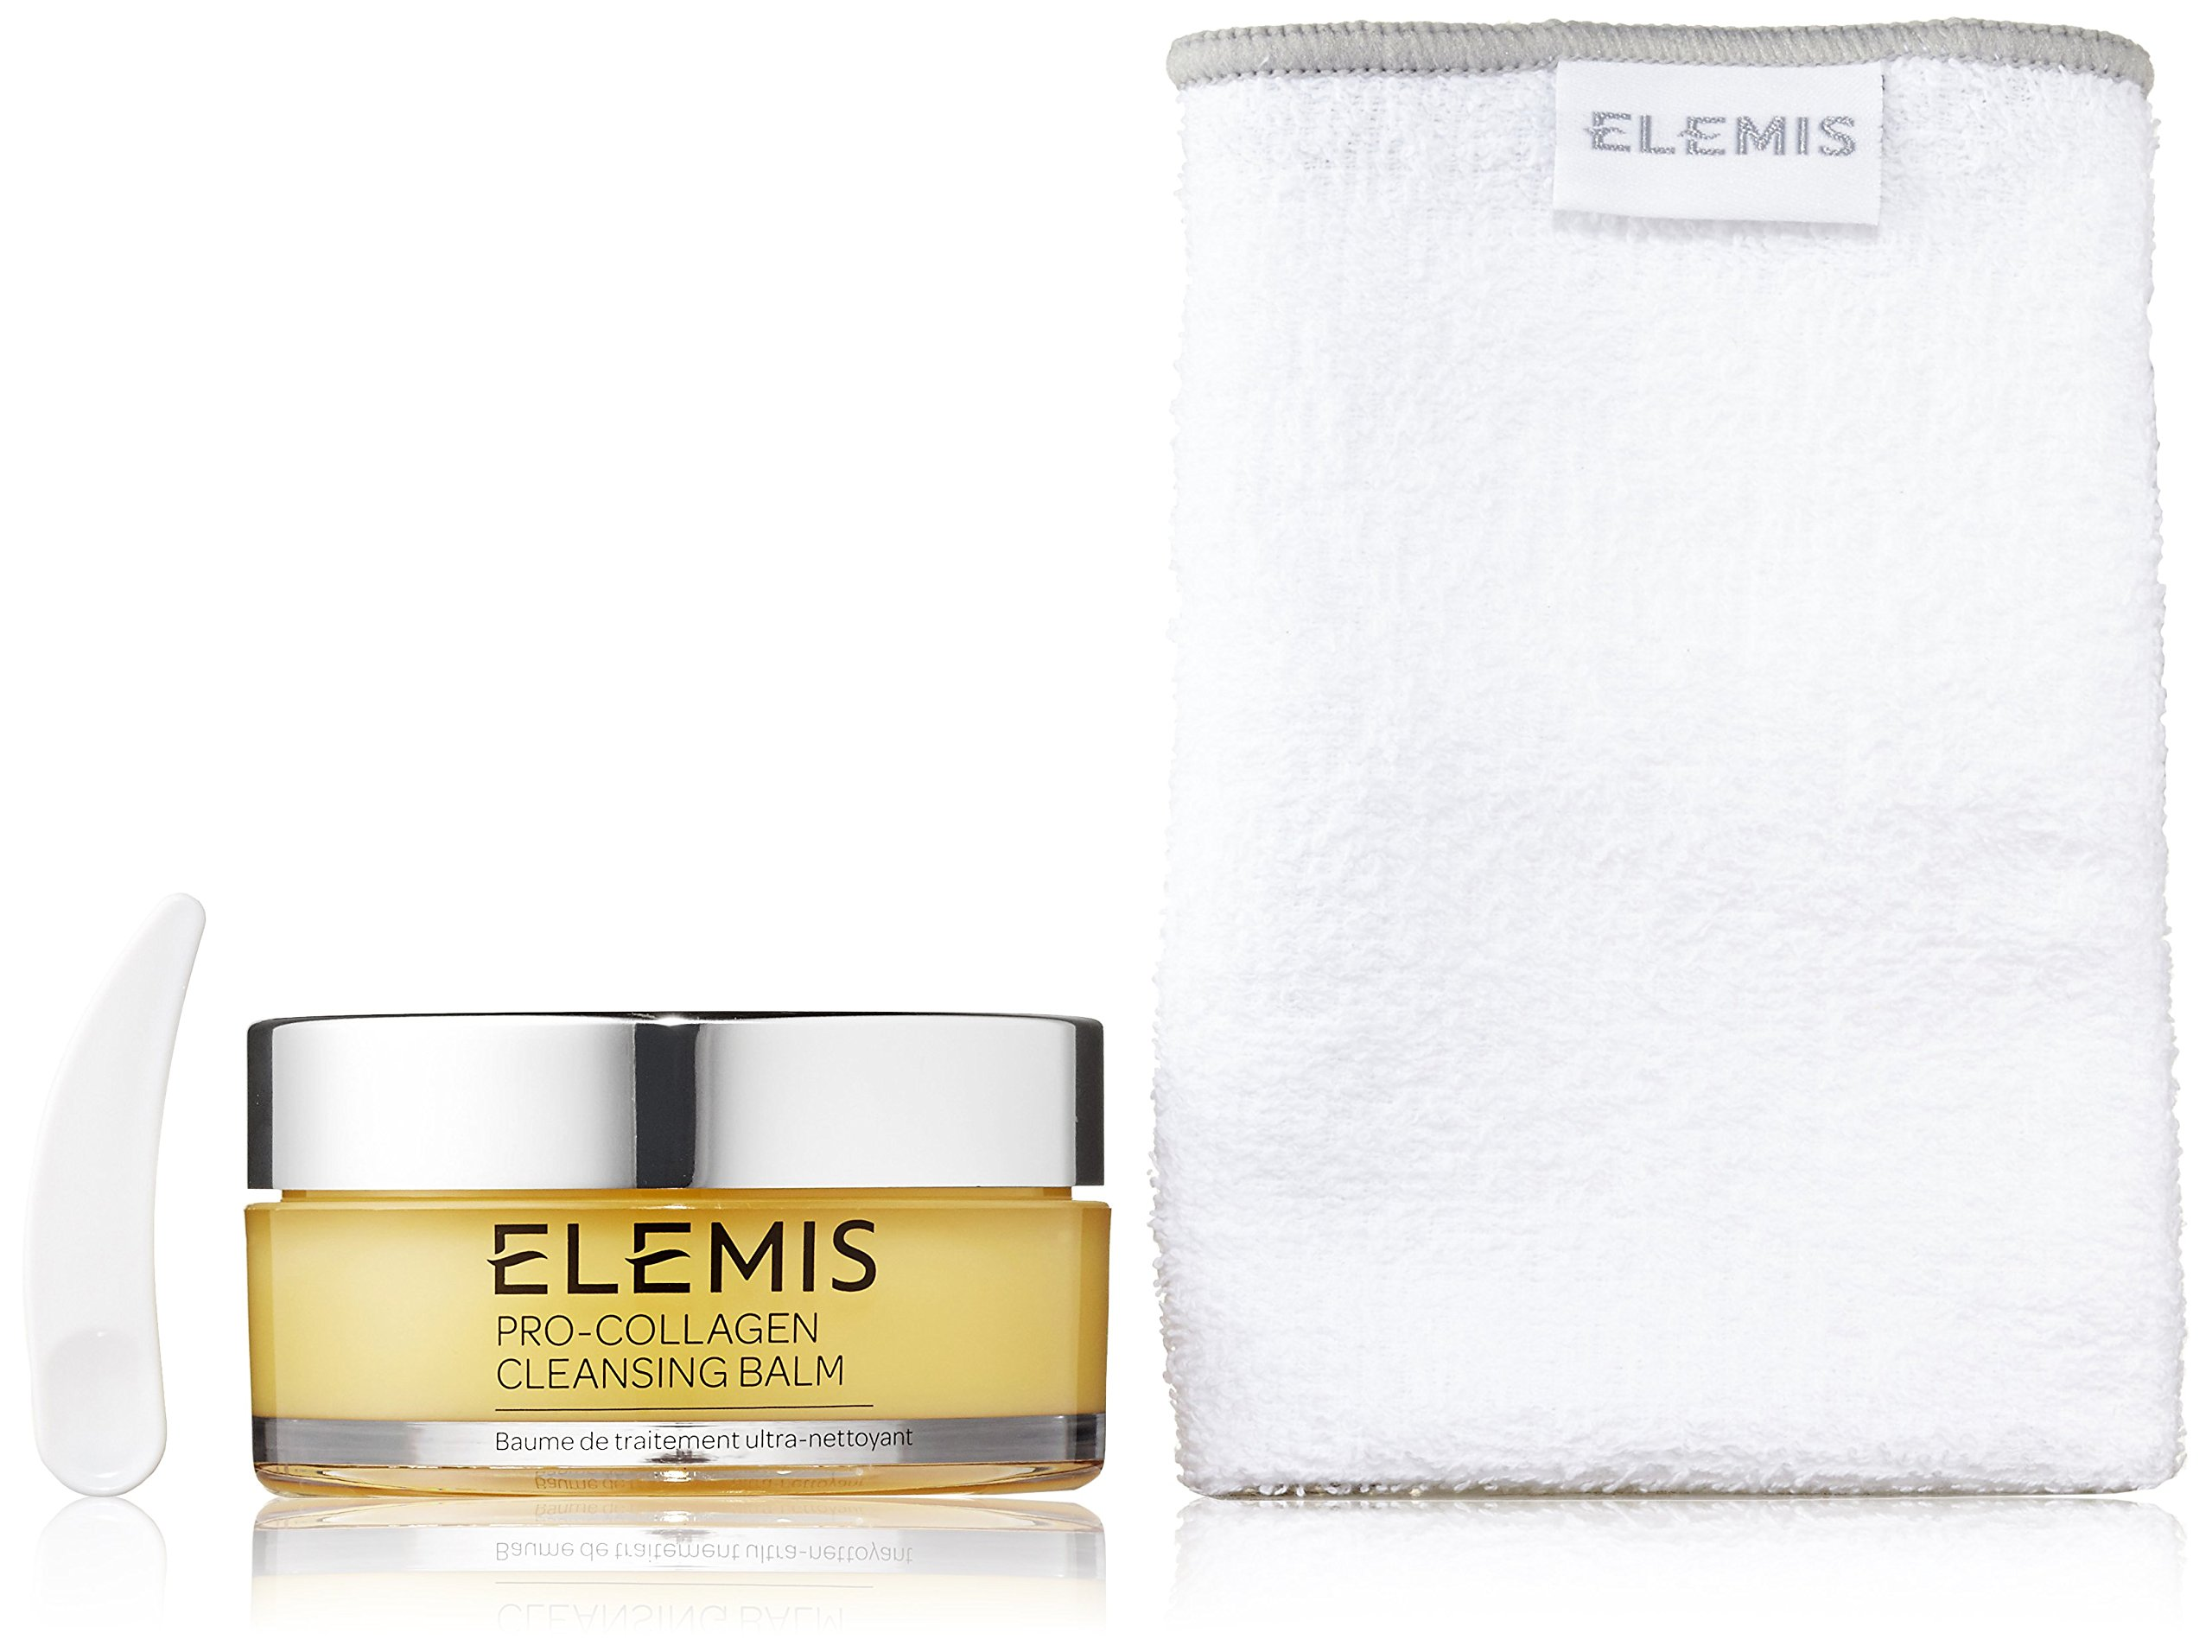 ELEMIS Pro-Collagen Cleansing Balm, Super Cleansing Treatment Balm, 3.7 fl. oz. by ELEMIS